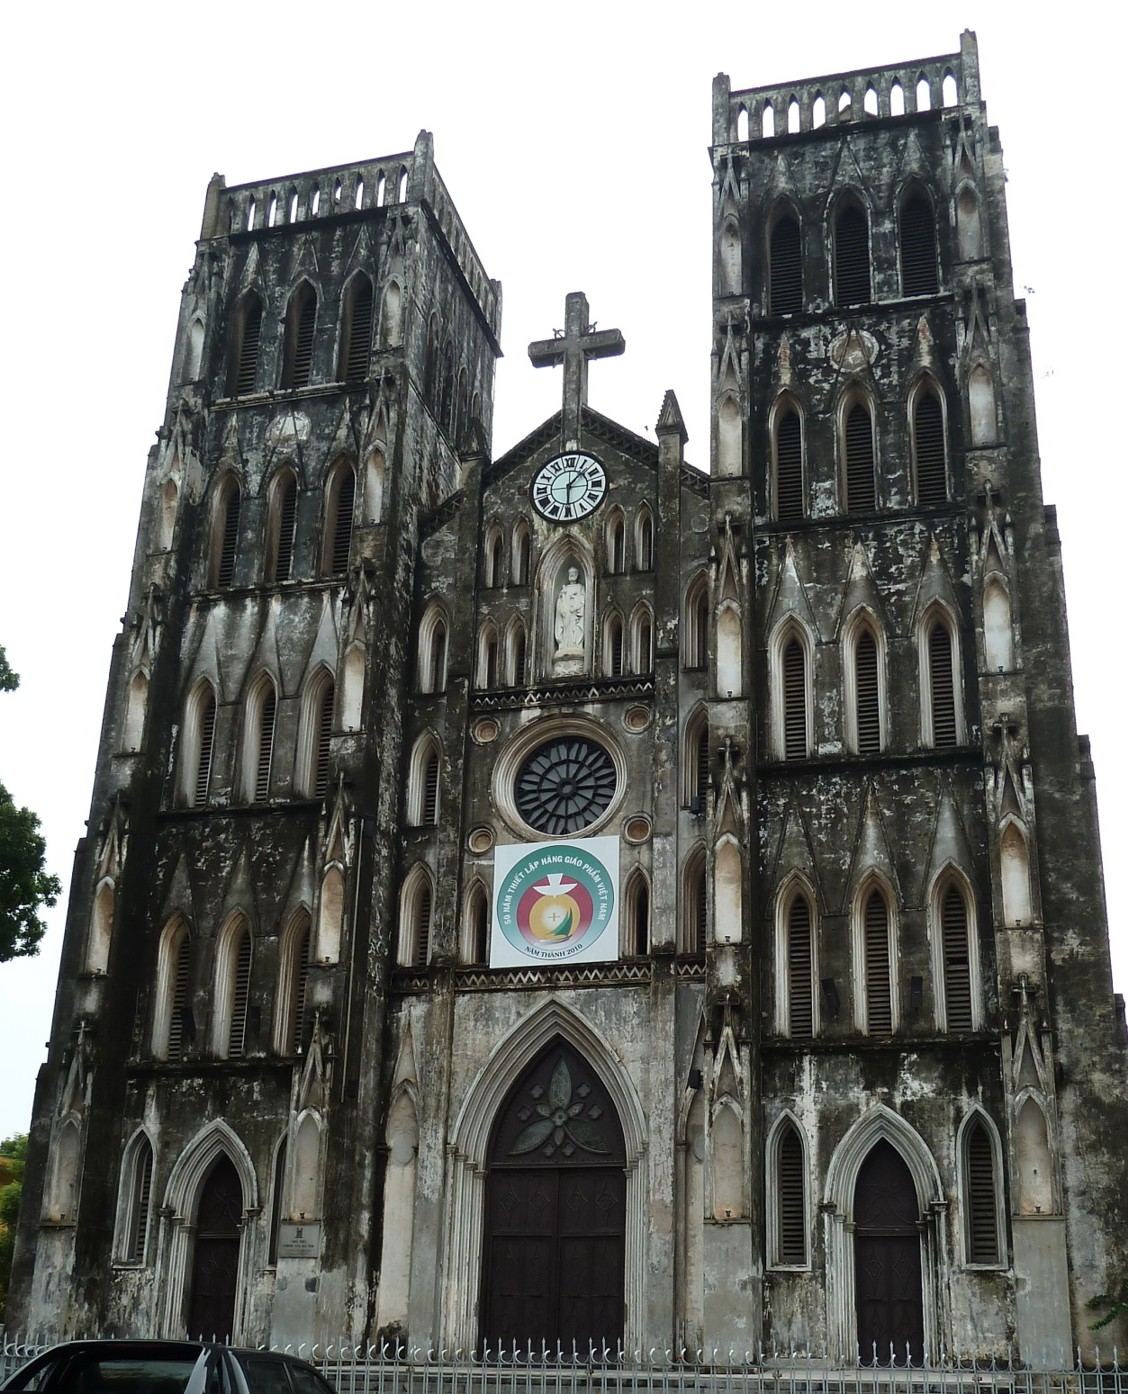 Name: St. Joseph Cathedral Original source: https://en.wikipedia.org/wiki/St._Joseph%27s_Cathedral,_Hanoi